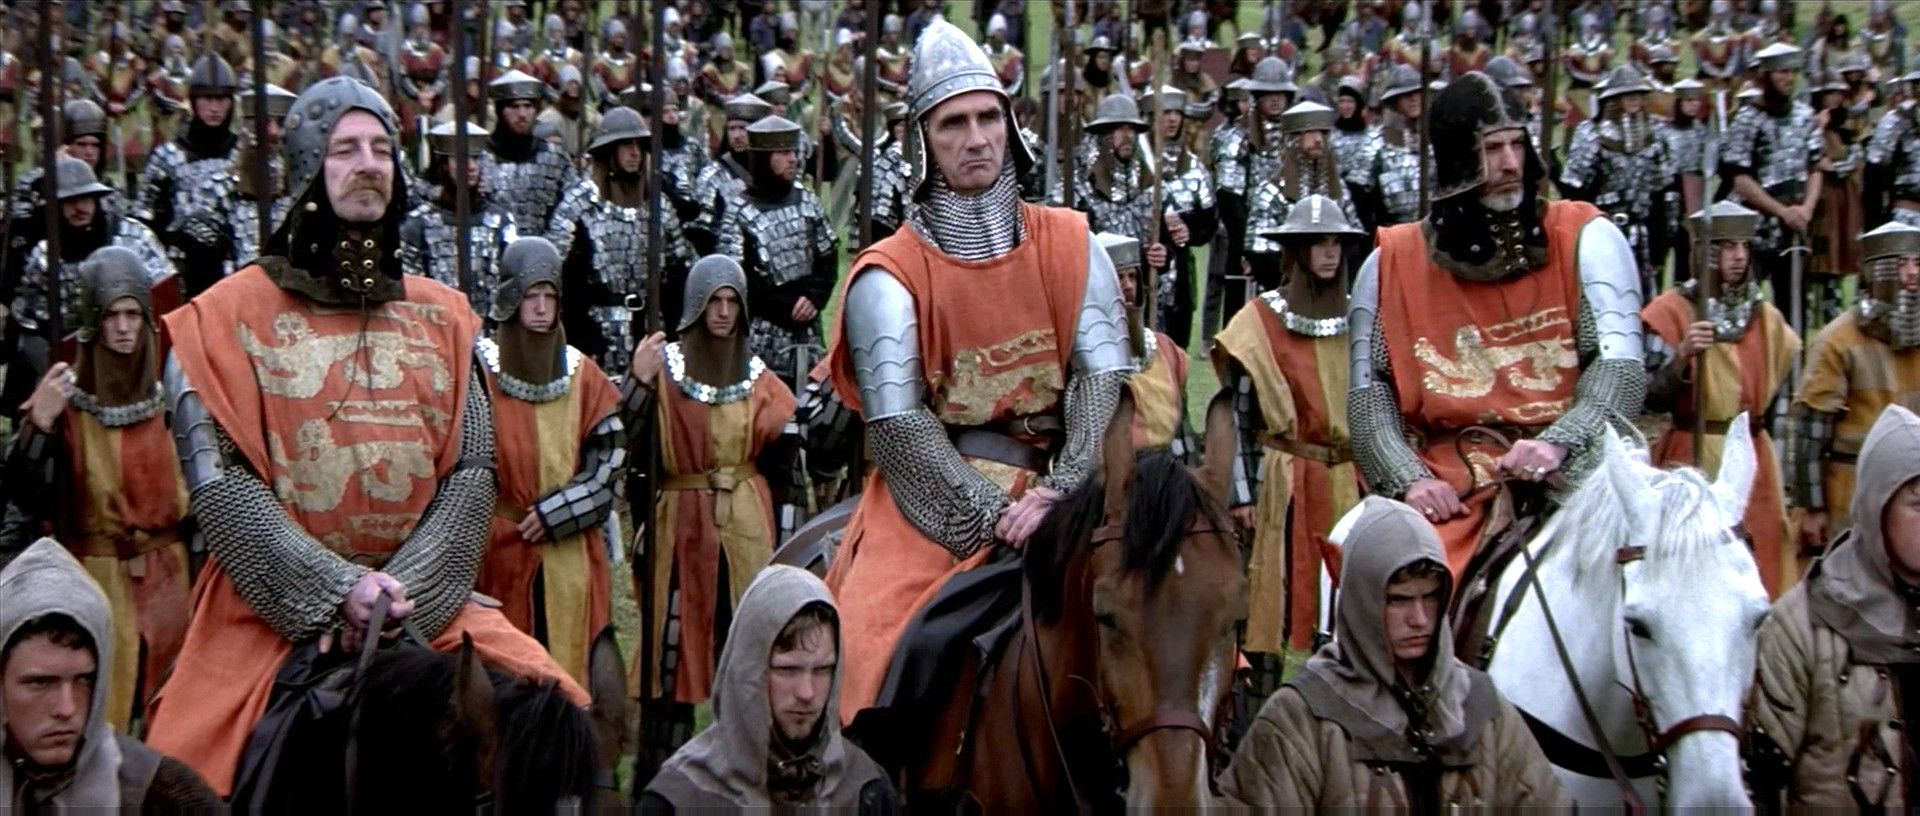 an analysis of the historical inaccuracies in the movie braveheart